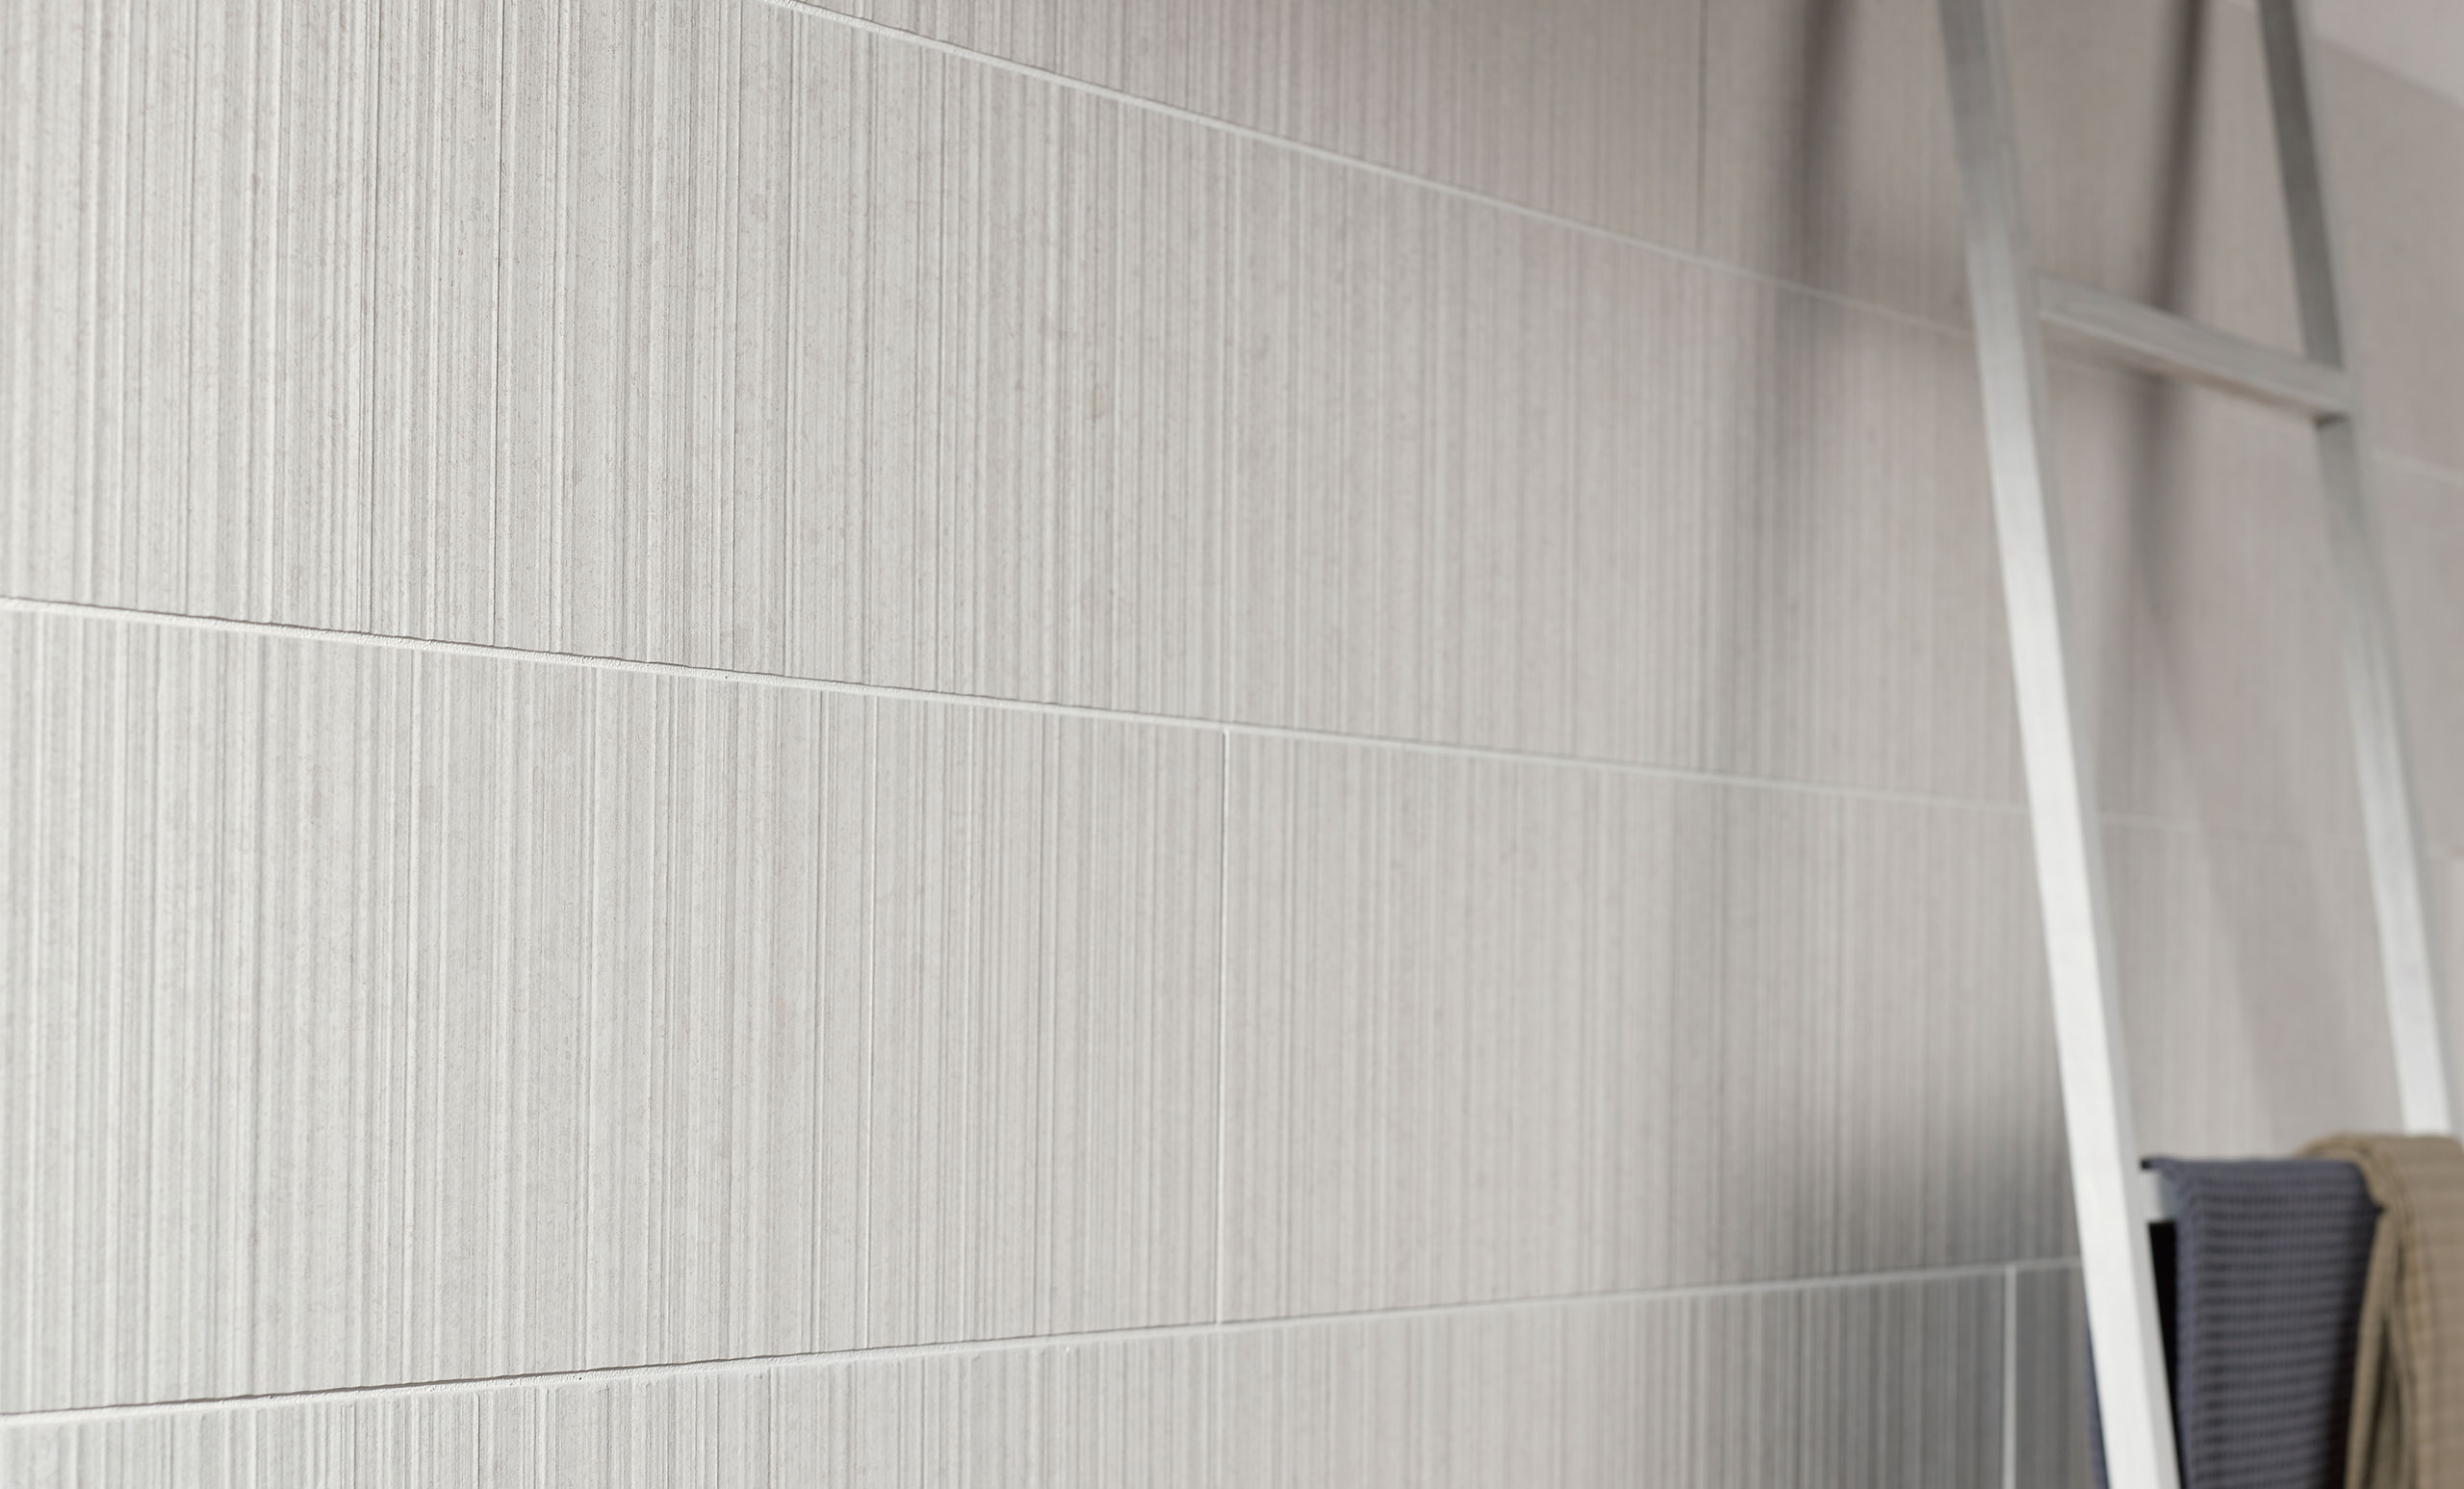 Otto Tiles Singapore Malford Ceramics Pte Ltd